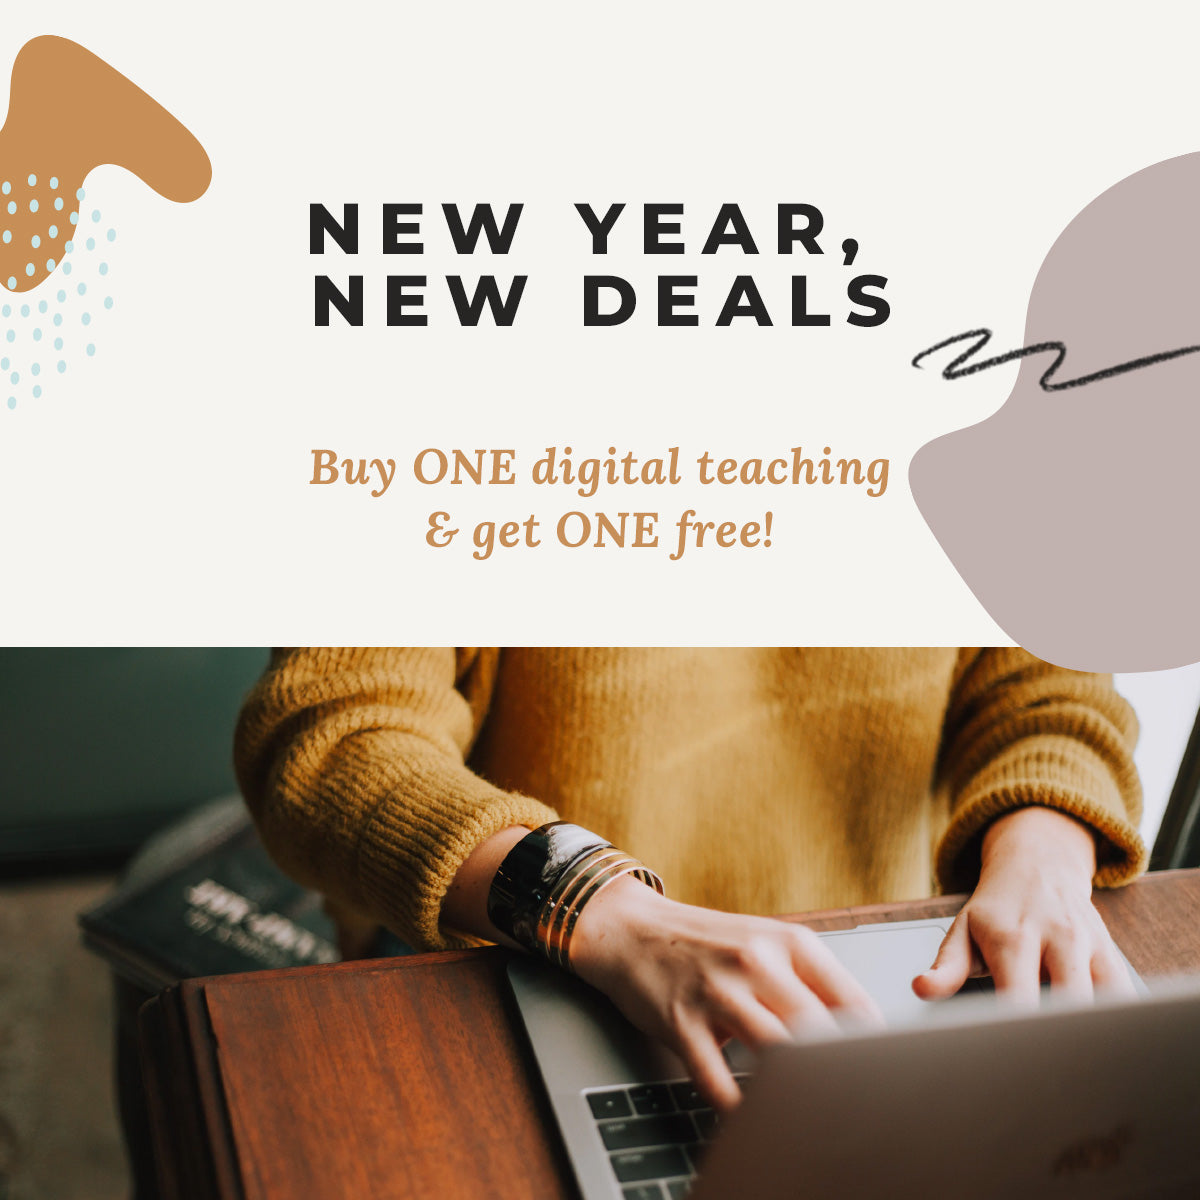 New Year, New Deals | By one digital item get one free